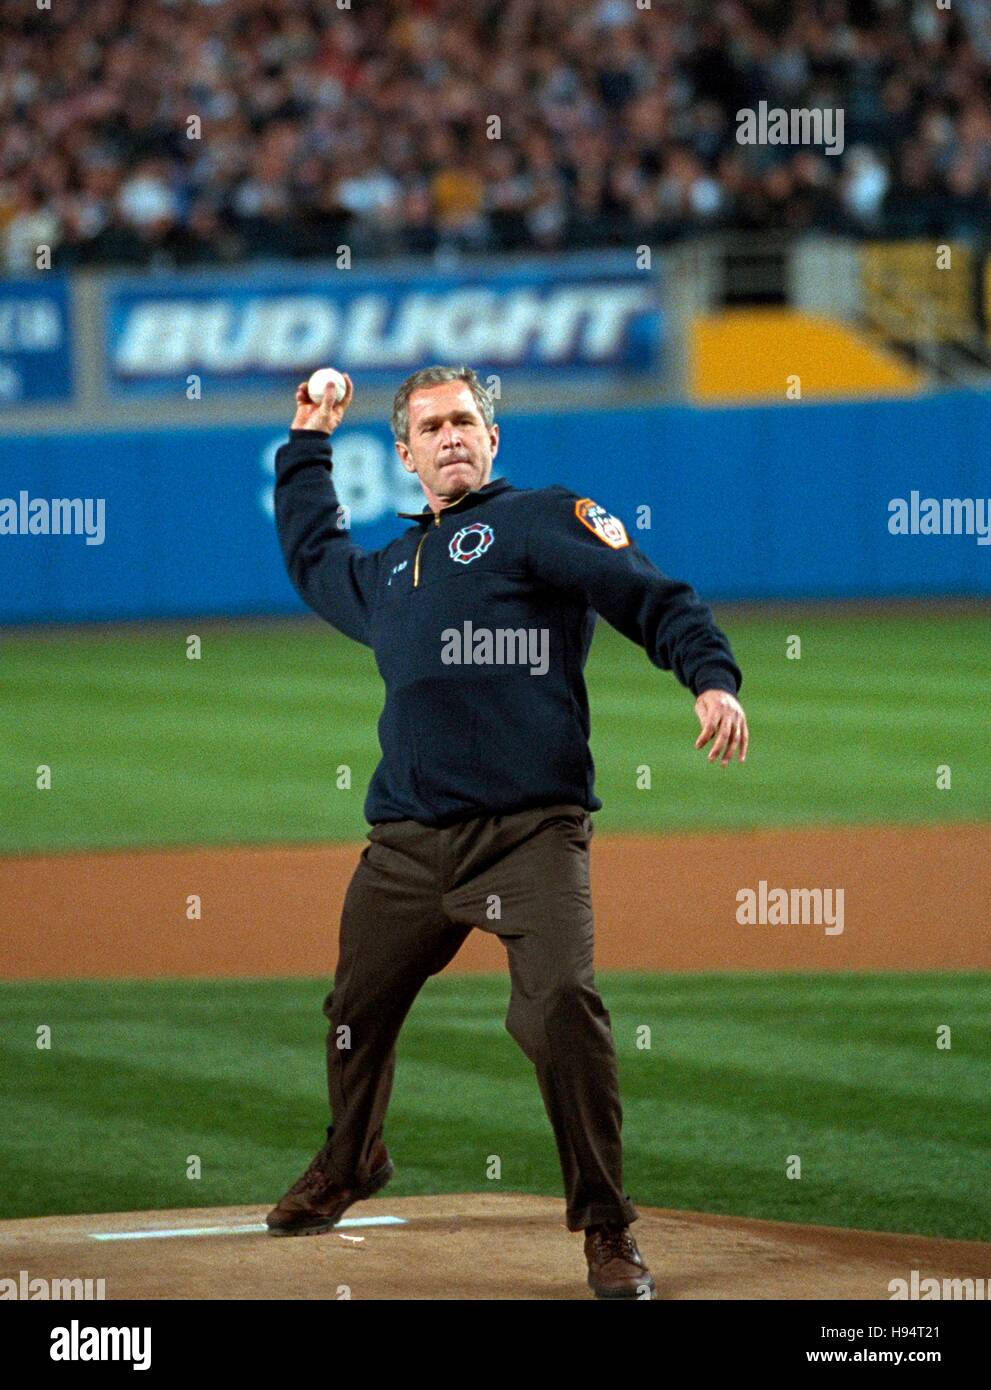 U.S. President George W. Bush throws the ceremonial first pitch before Game Three of the World Series between the Arizona Diamondbacks and the New York Yankees at Yankee Stadium October 30, 2001 in New York City, New York. Stock Photo